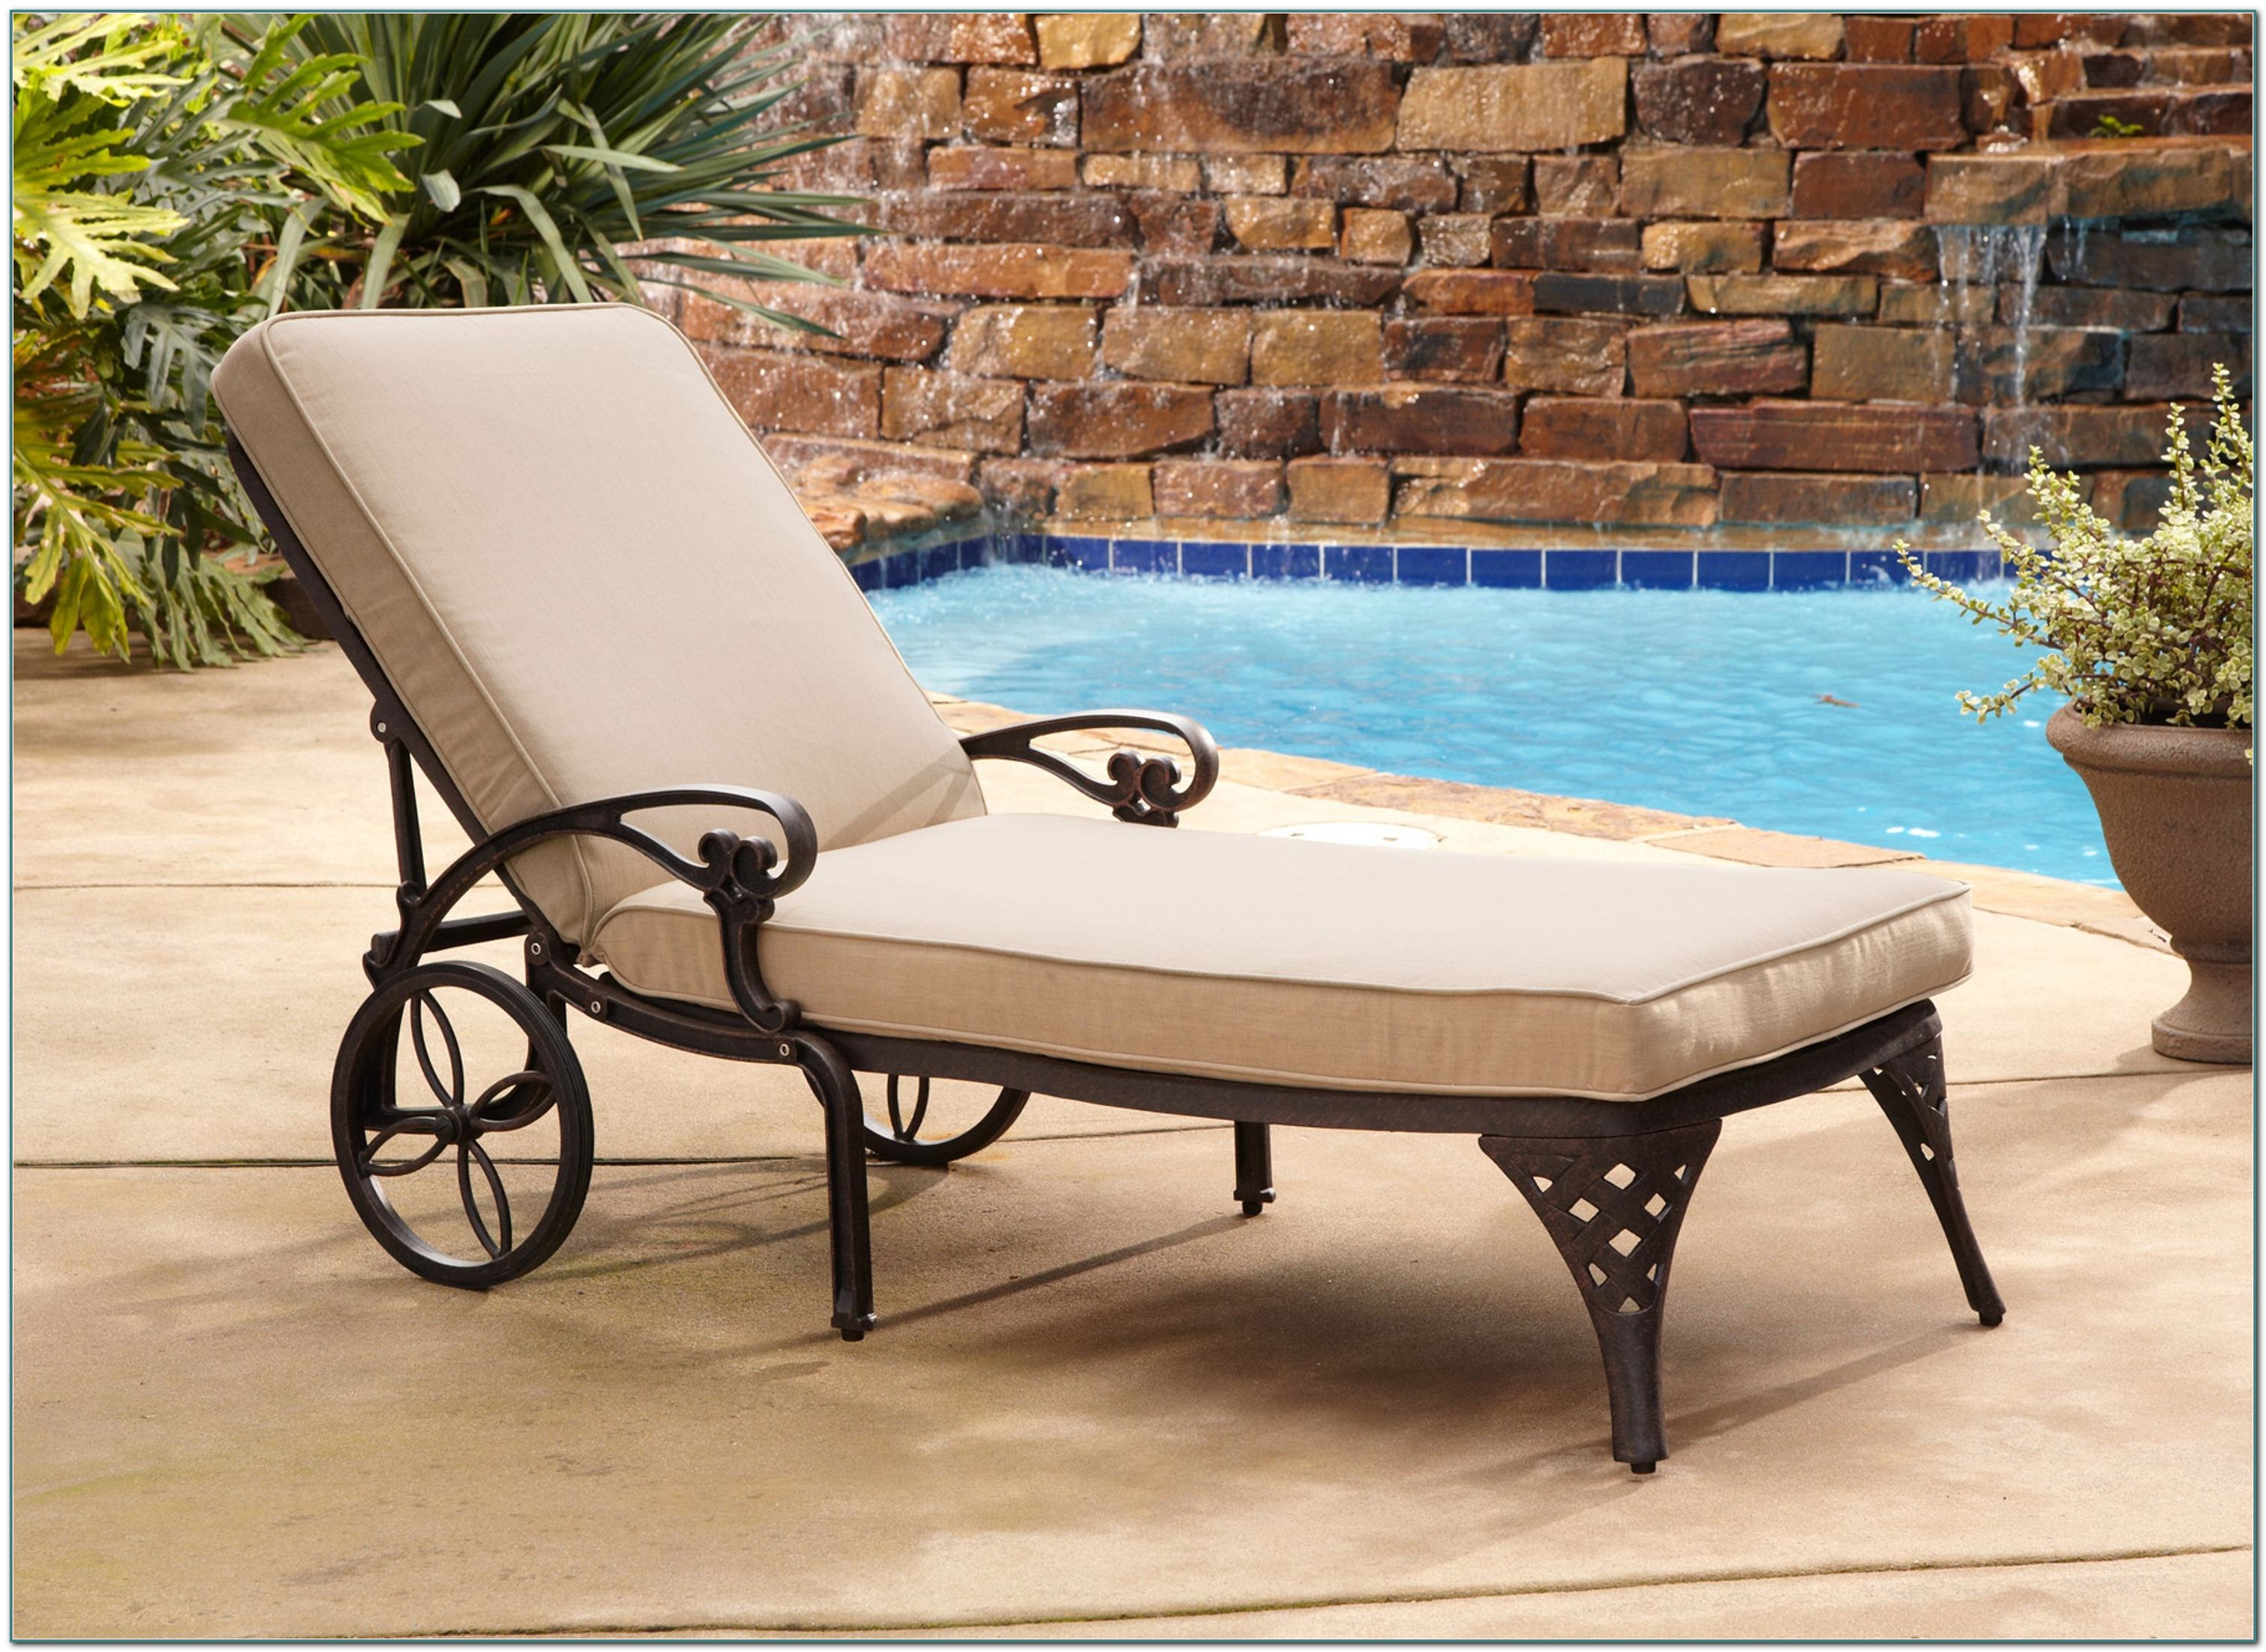 Outdoor Chaise Lounge Chairs Walmart